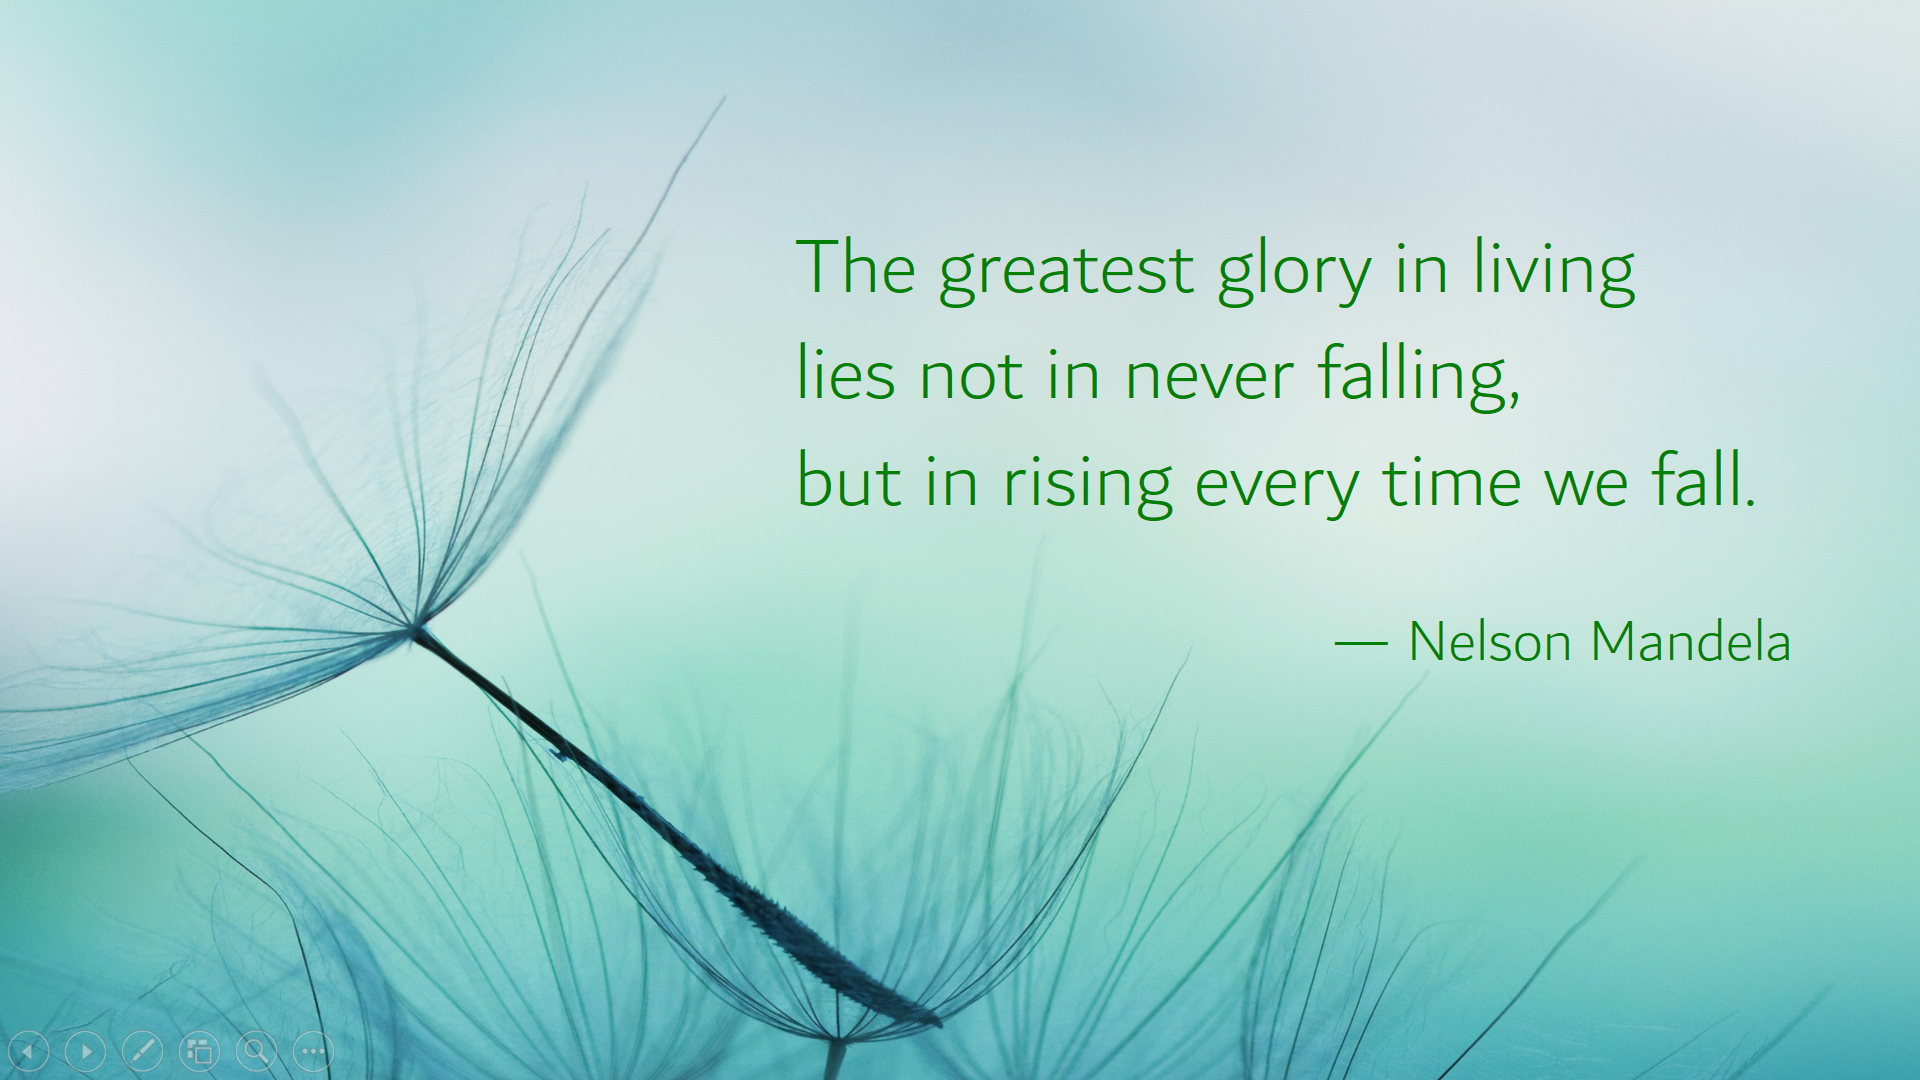 """""""The greatest glory in living lies not in never falling, but in rising every time we fall."""" –Nelson Mandela [1920 x 1080]"""